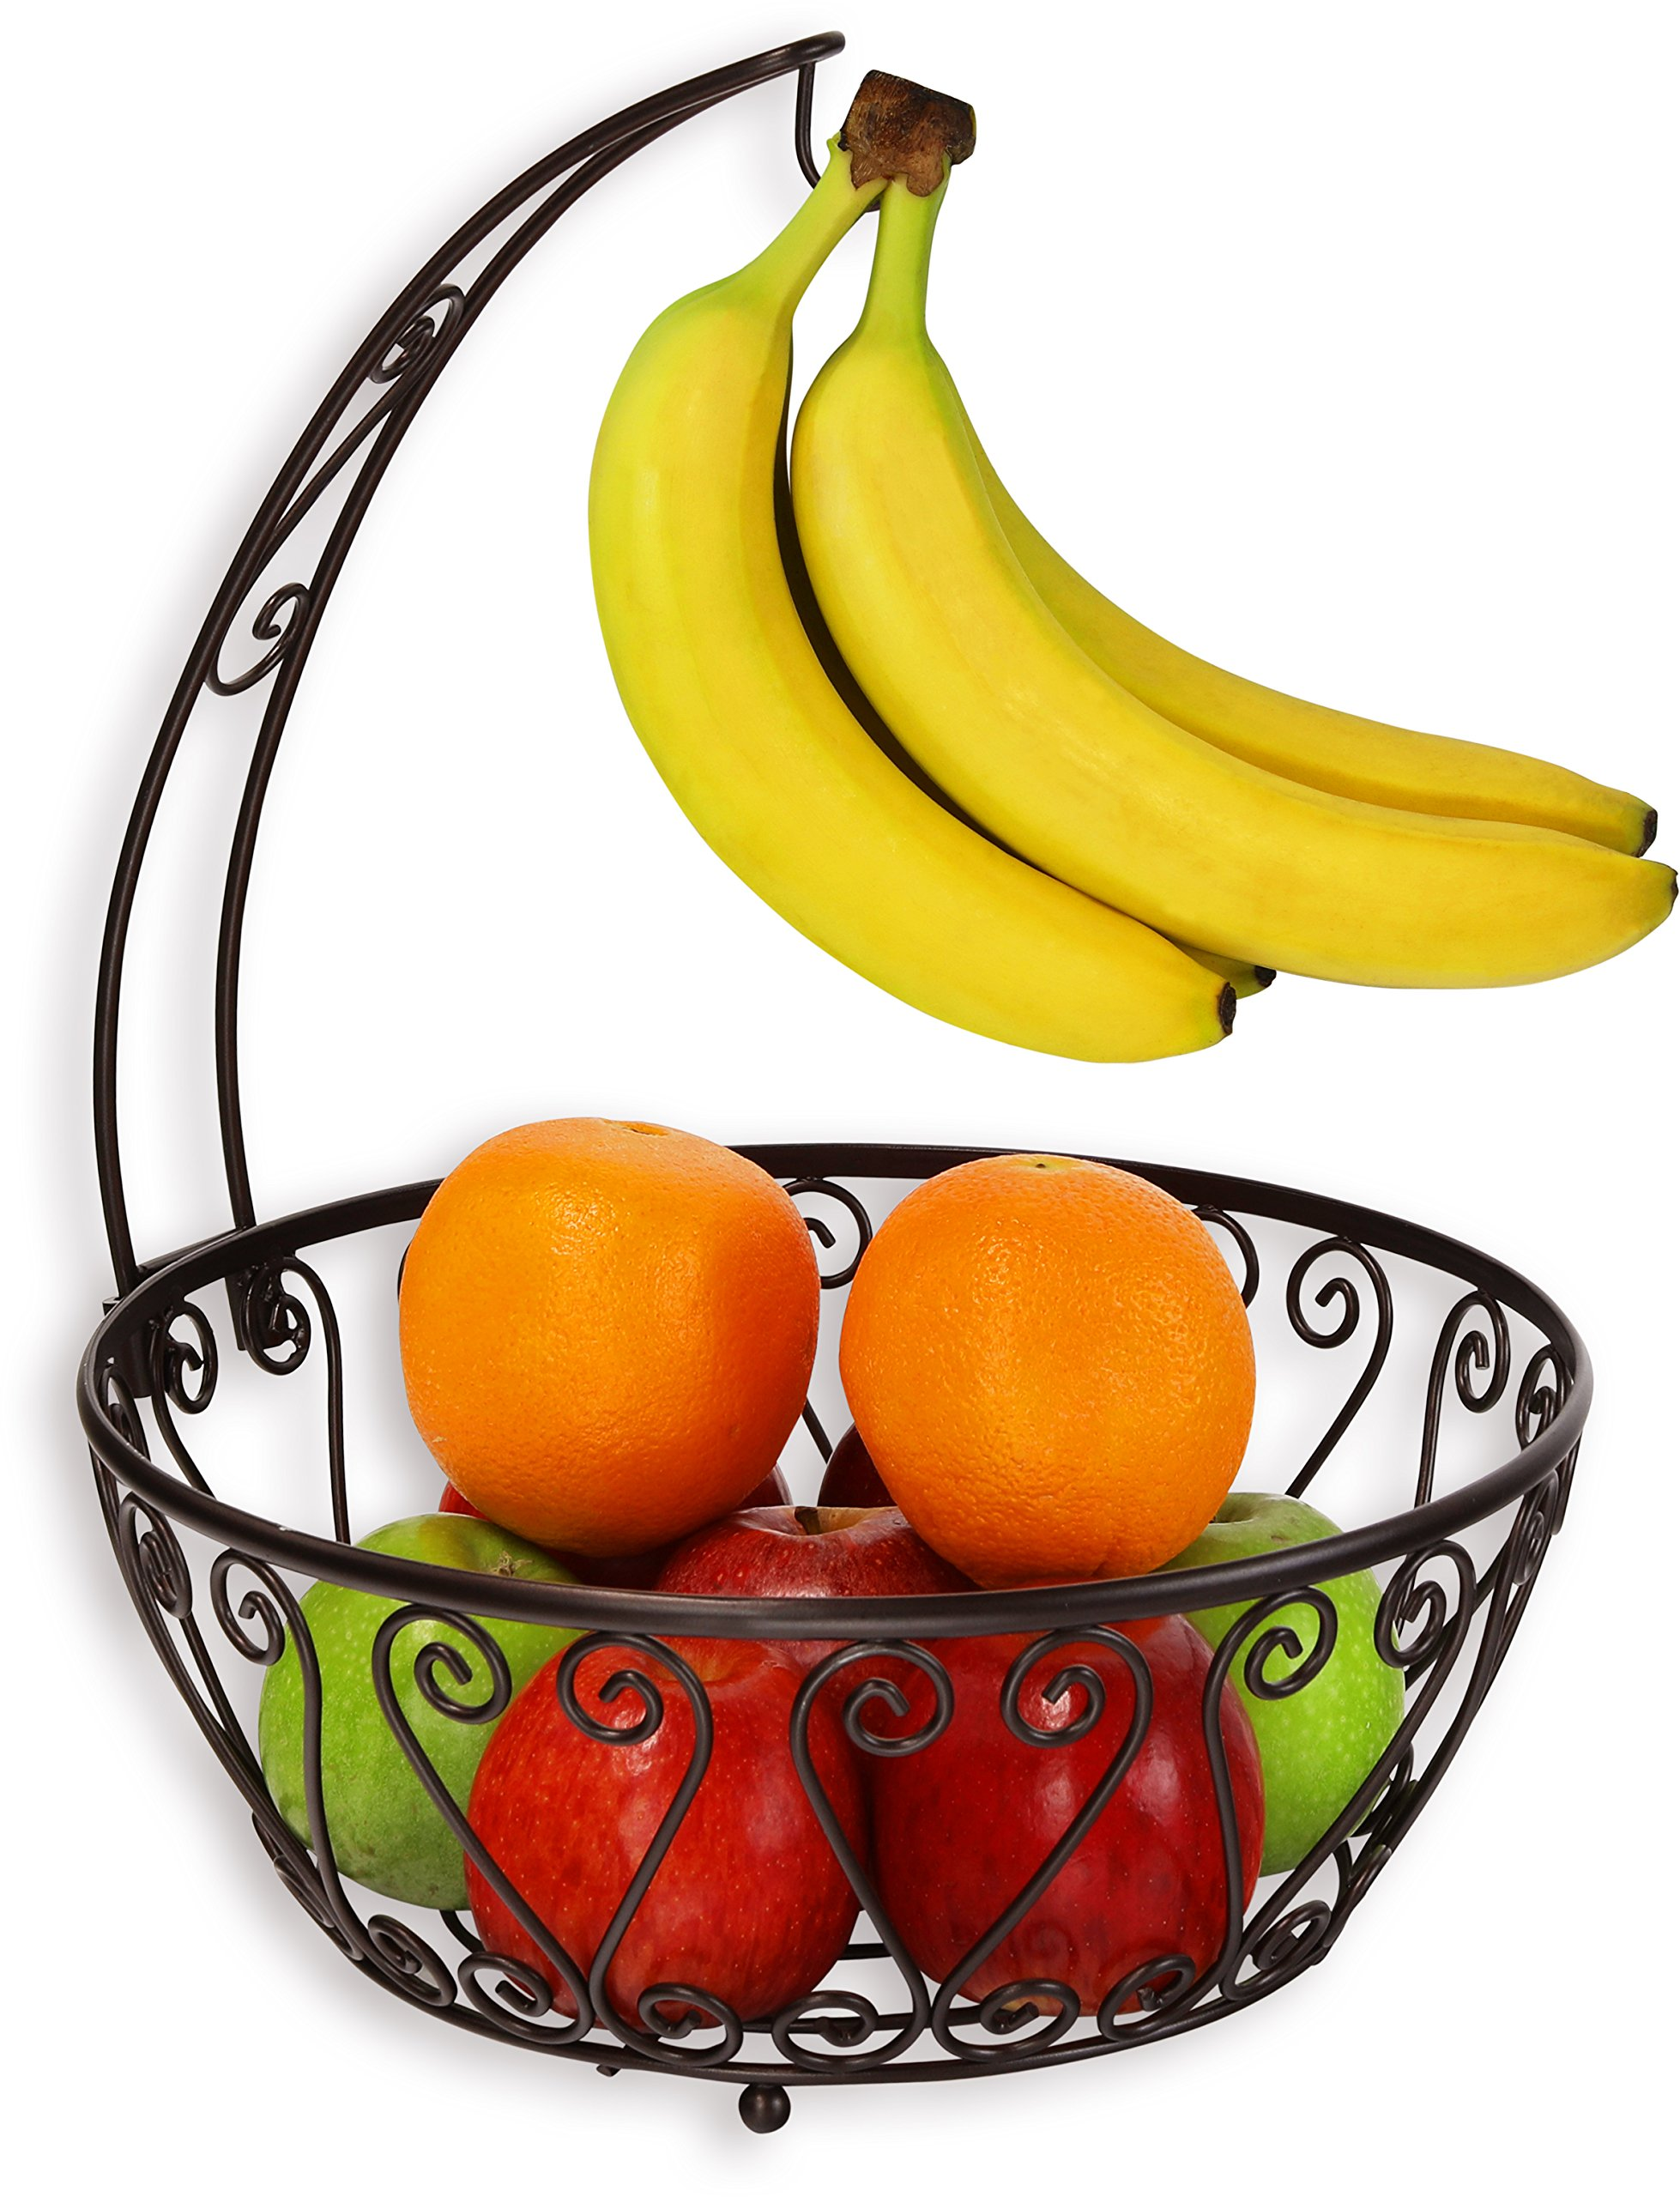 SimpleHouseware Fruit Basket Bowl with Banana Tree Hanger, Bronze by Simple Houseware (Image #1)